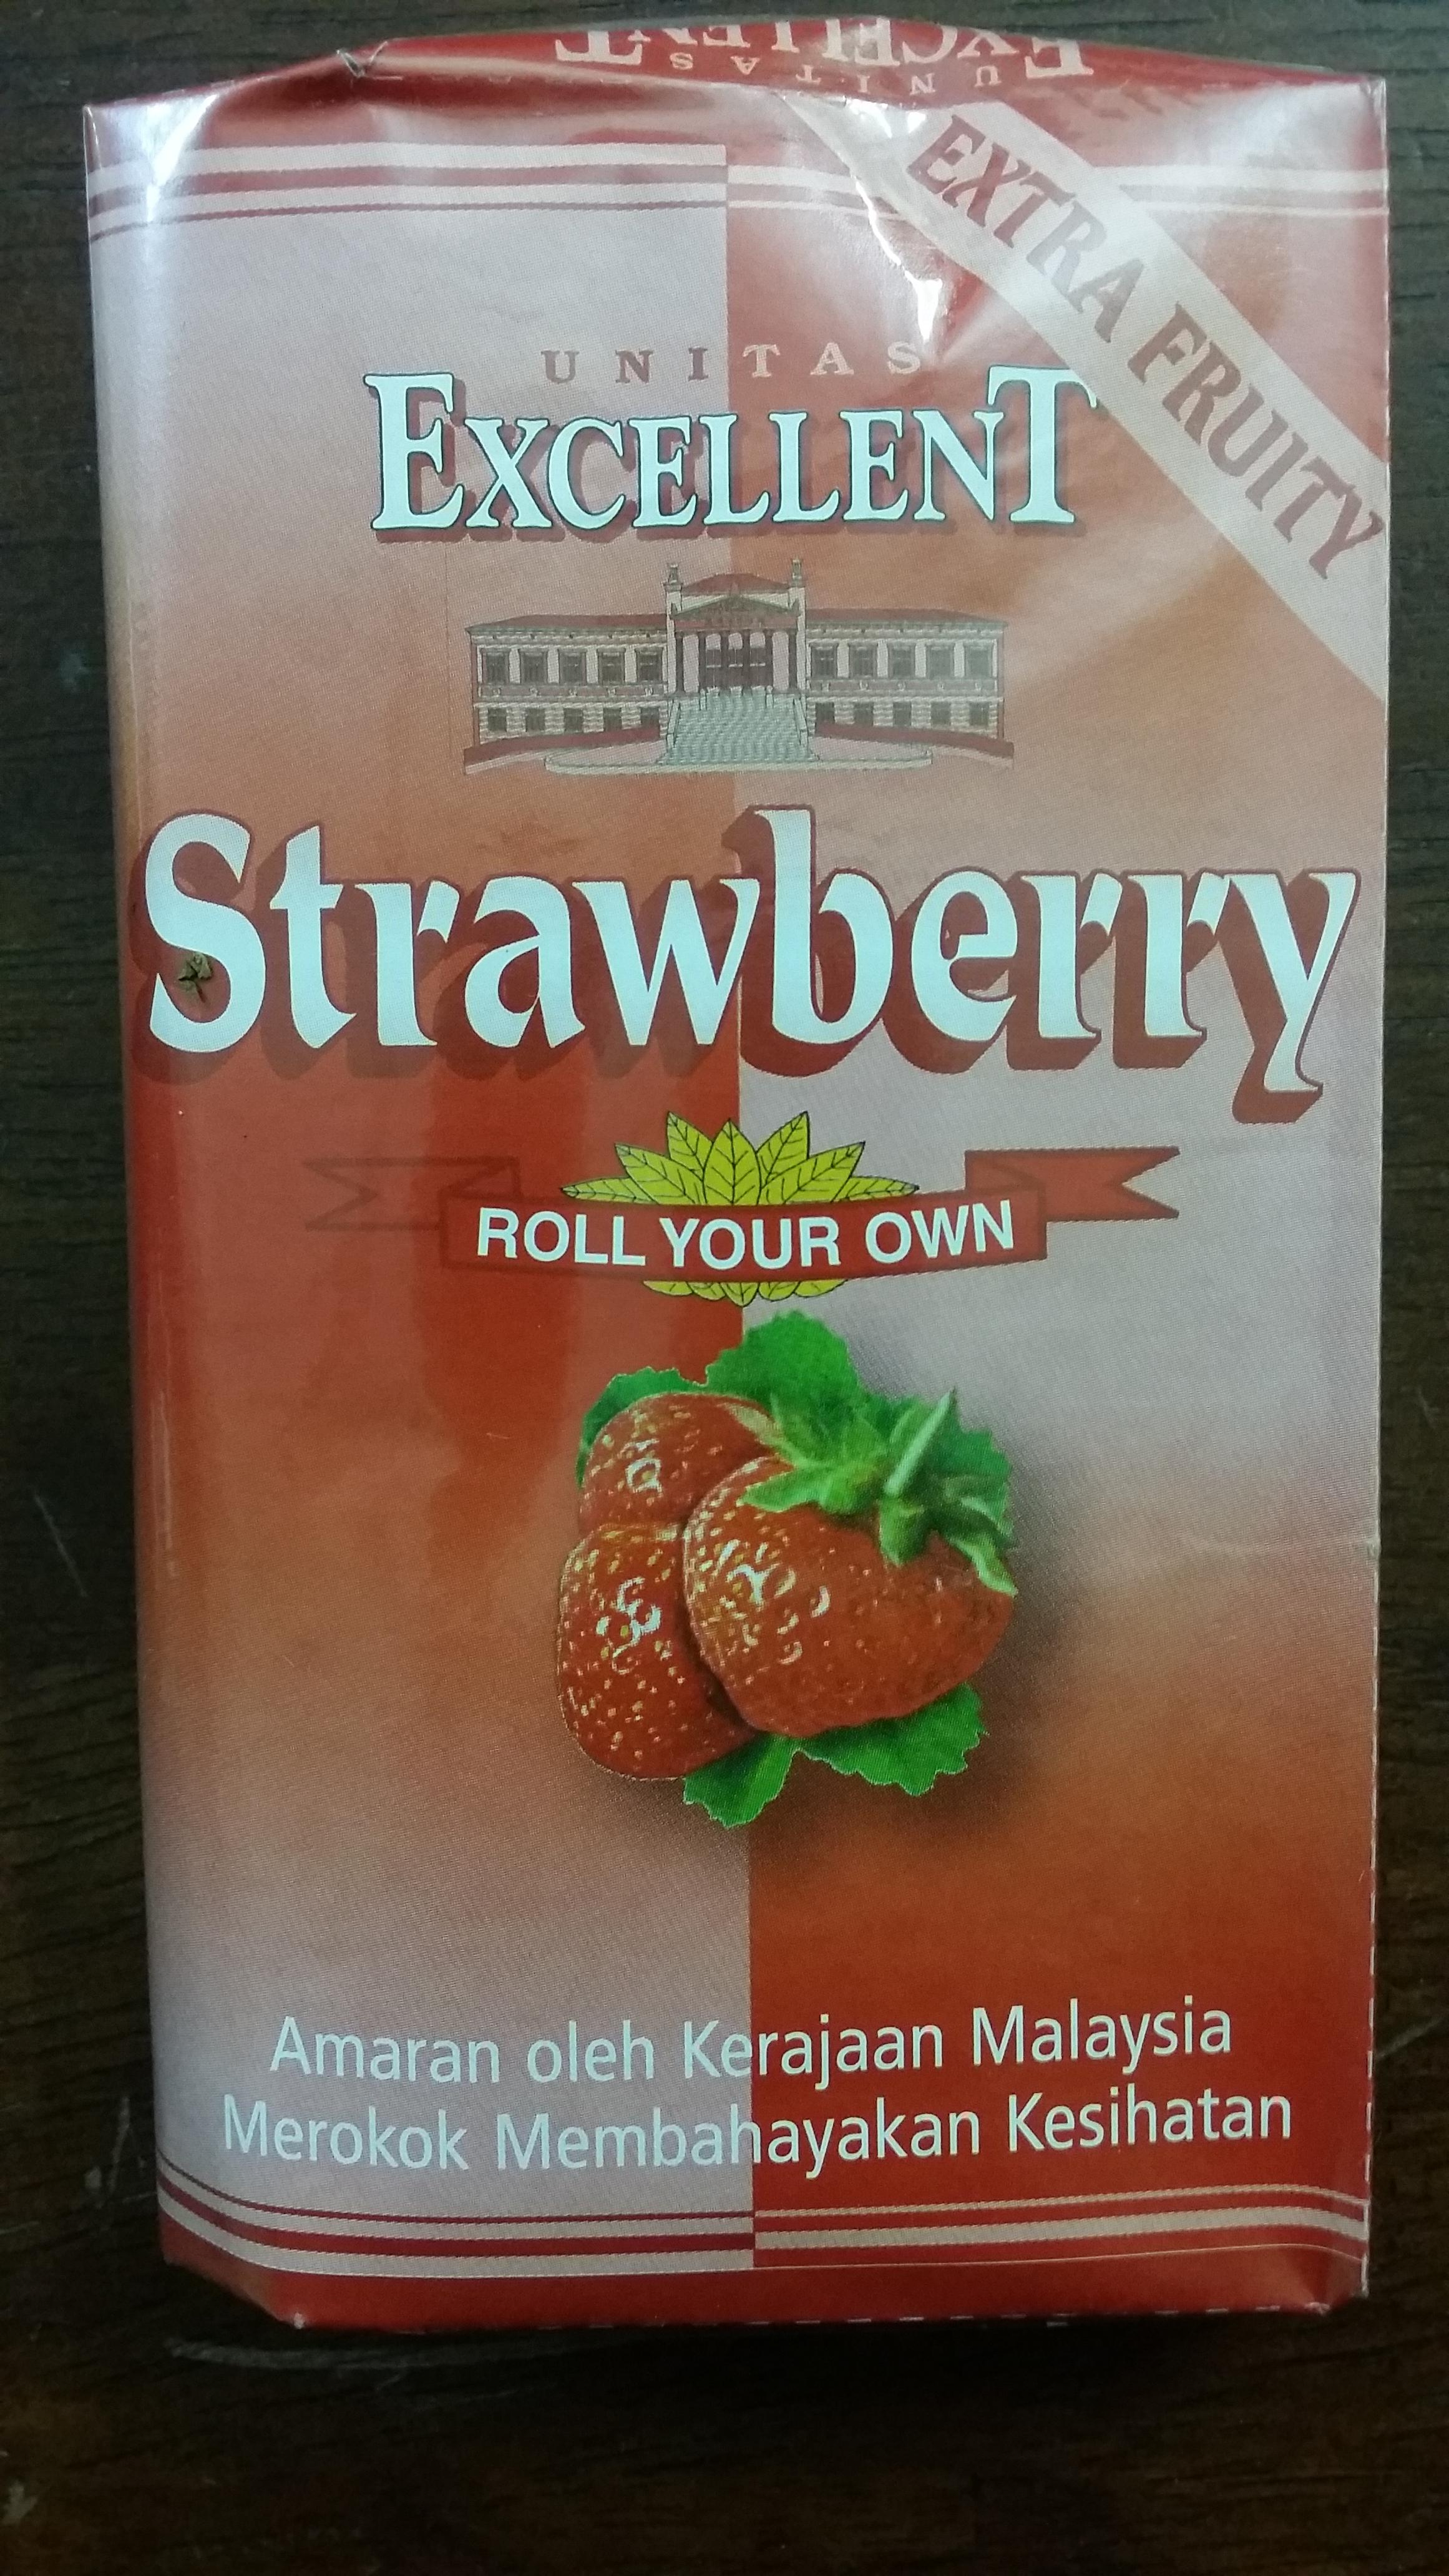 Excellent Strawberry 40g